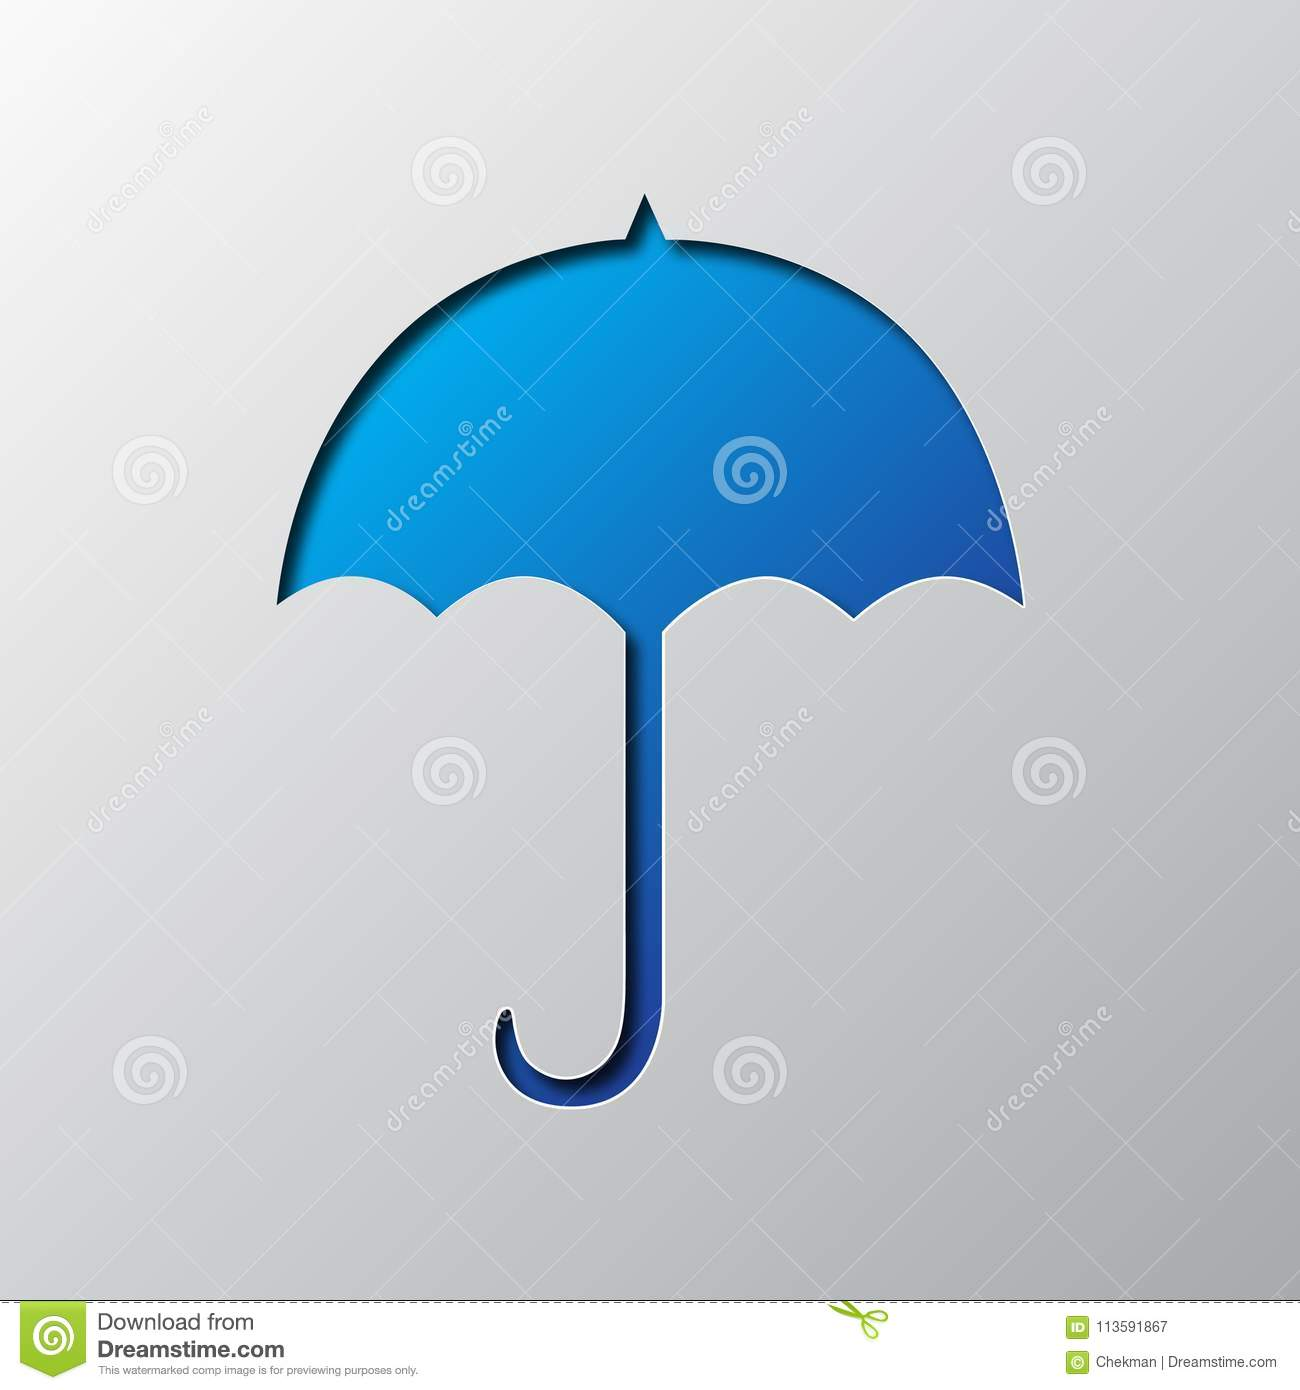 Bright Blue Umbrella Out Of Paper Vector Illustration Is Cut From Icon With Shadow